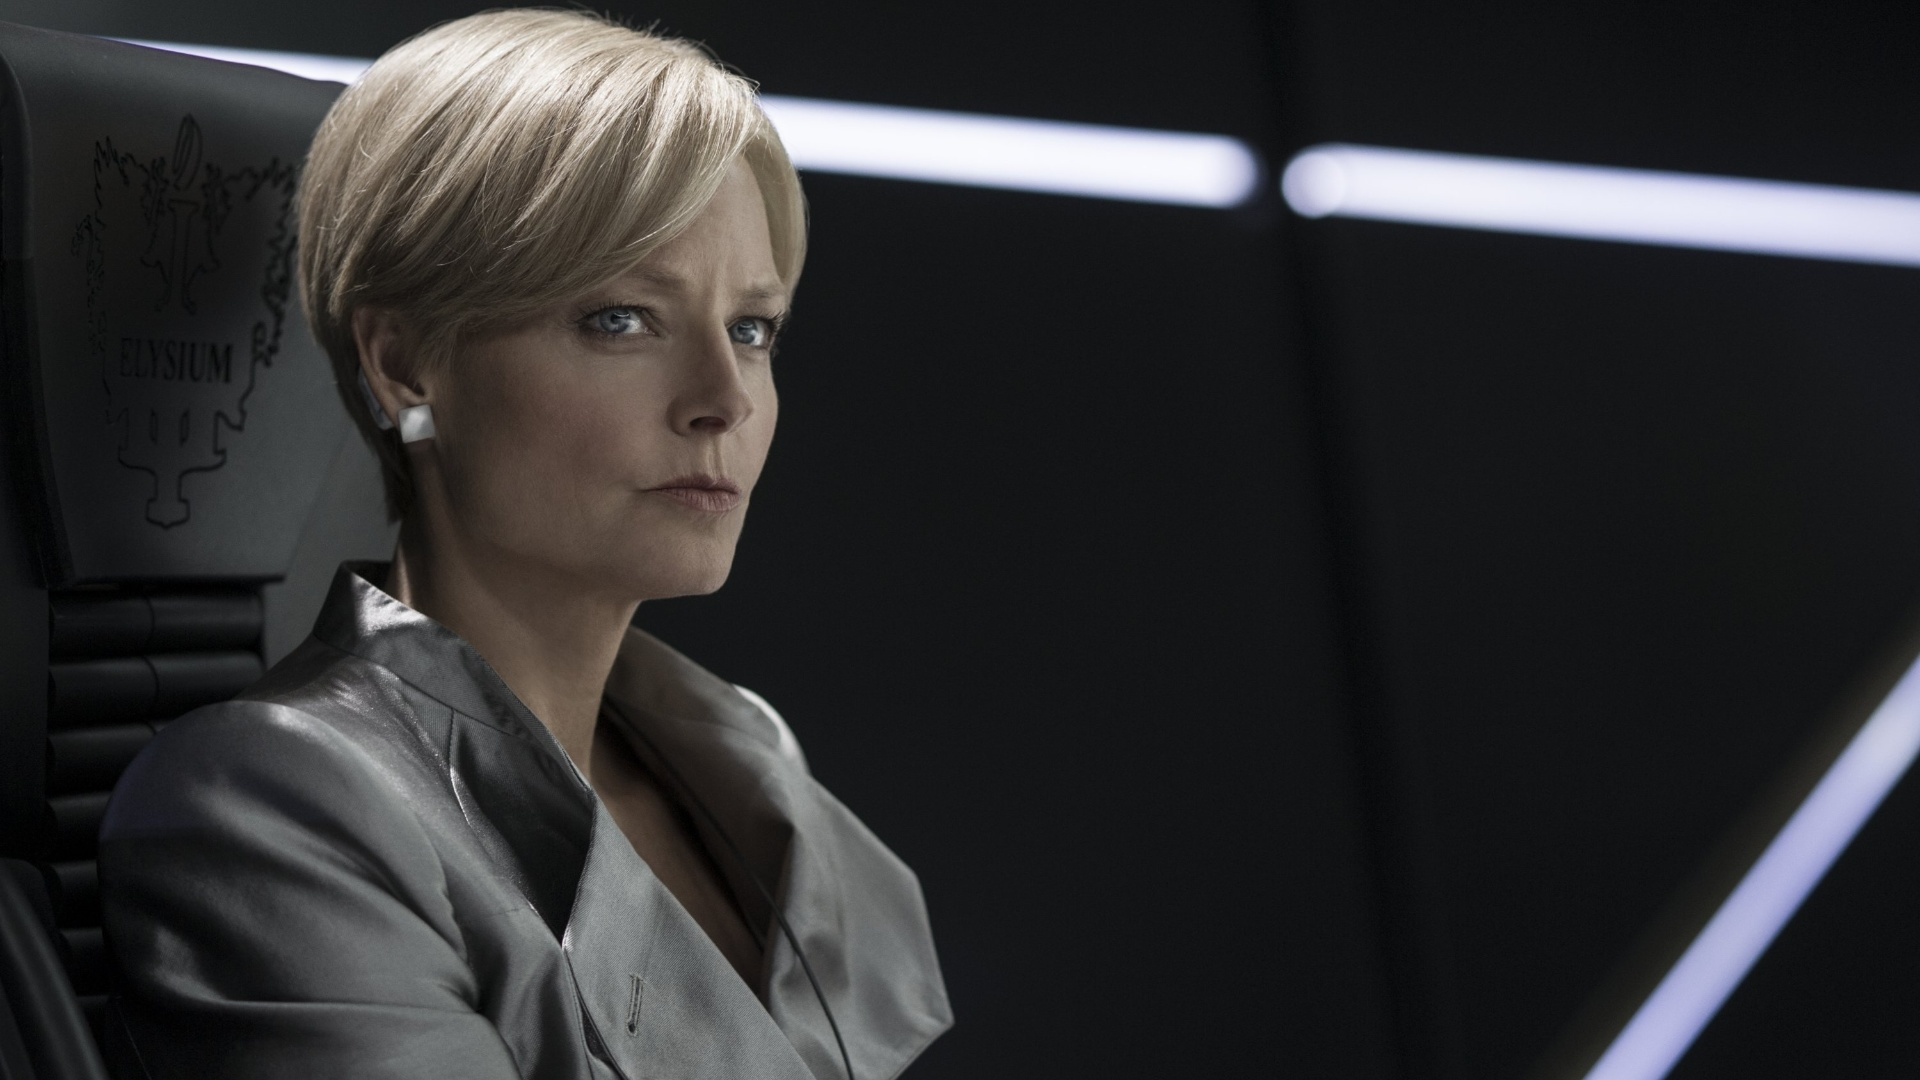 Jodie Foster's character was one of the most boring villains of the summer.